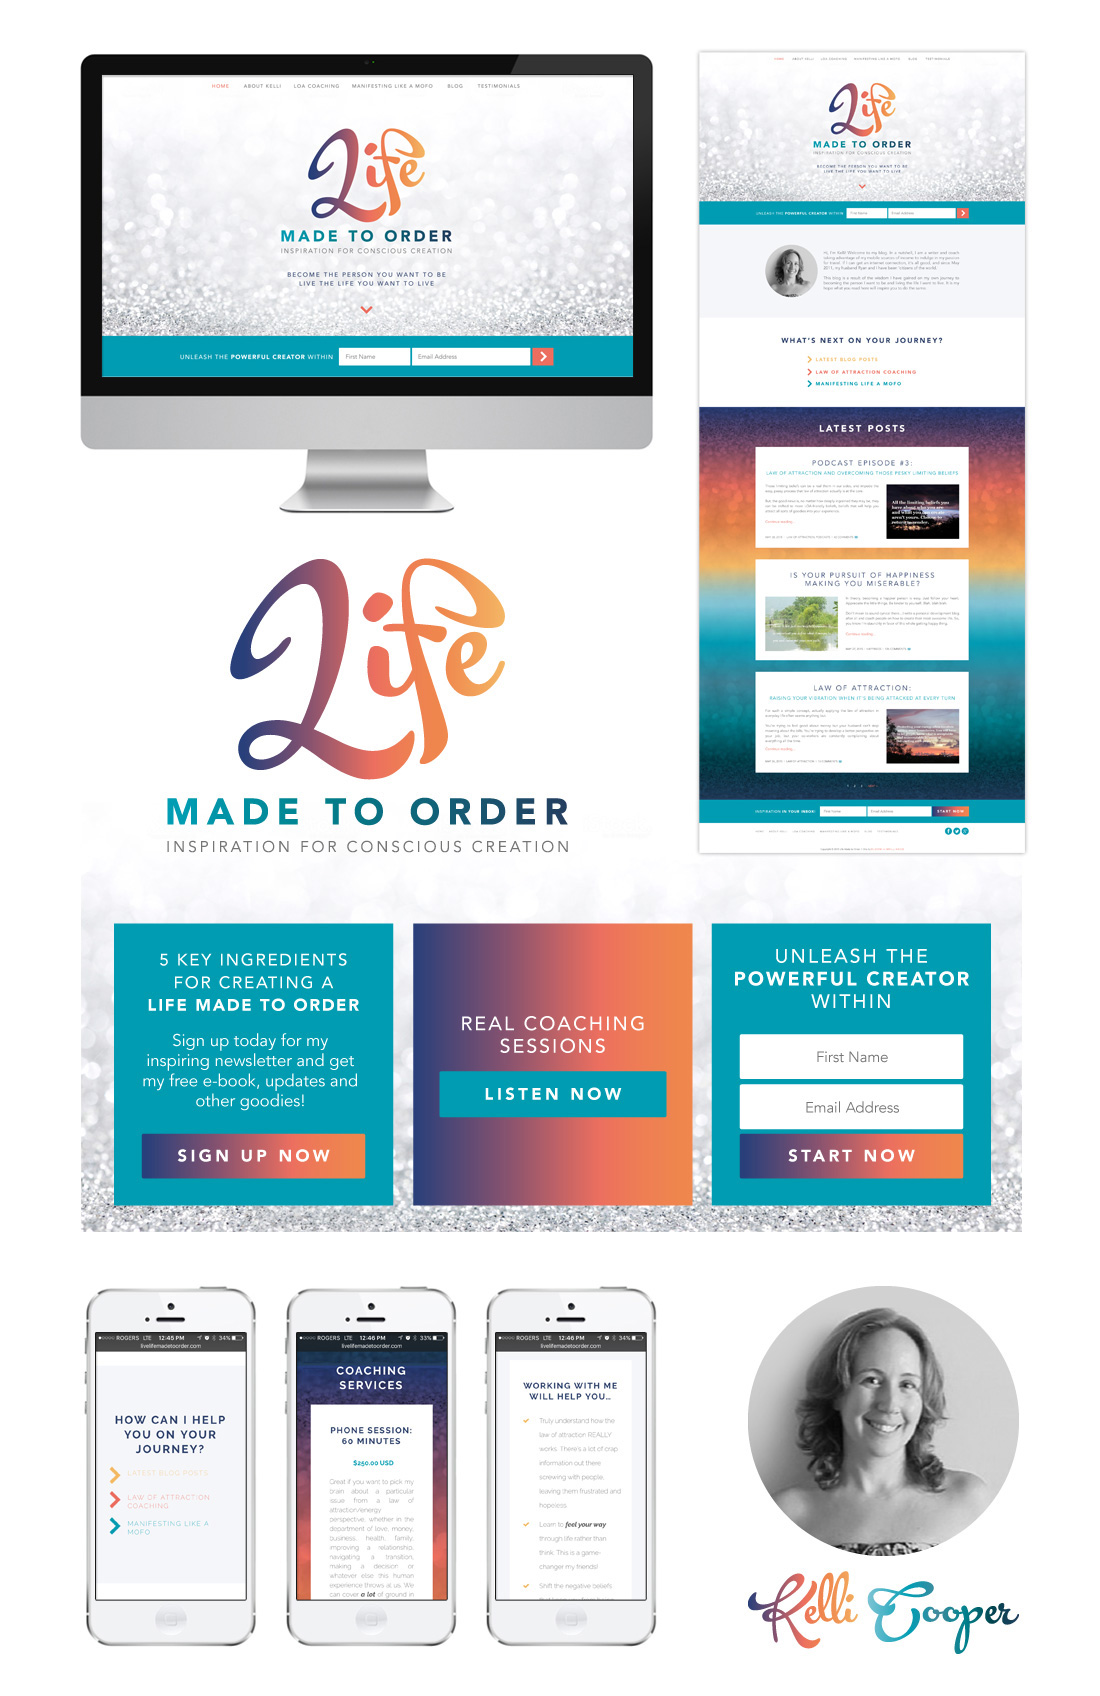 life-made-to-order-winnipeg-responsive-website-design-branding-boards